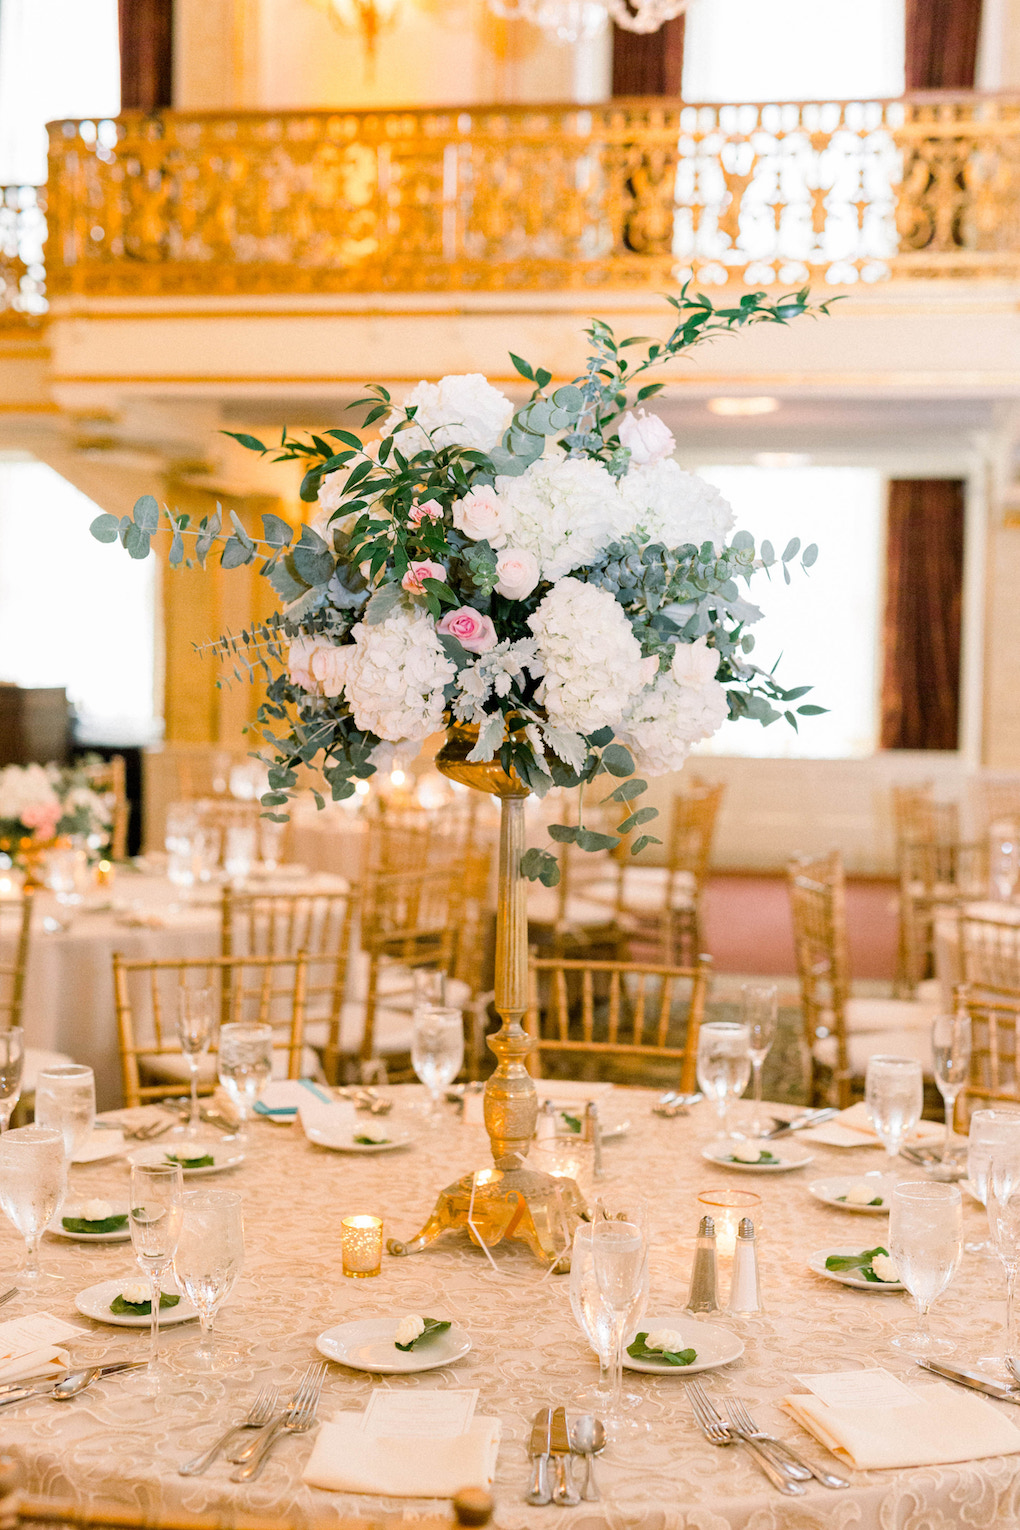 Wedding table decor: Romantic Fairytale wedding at the Omni William Penn in Pittsburgh, PA planned by Exhale Events. Find more wedding inspiration at exhale-events.com!